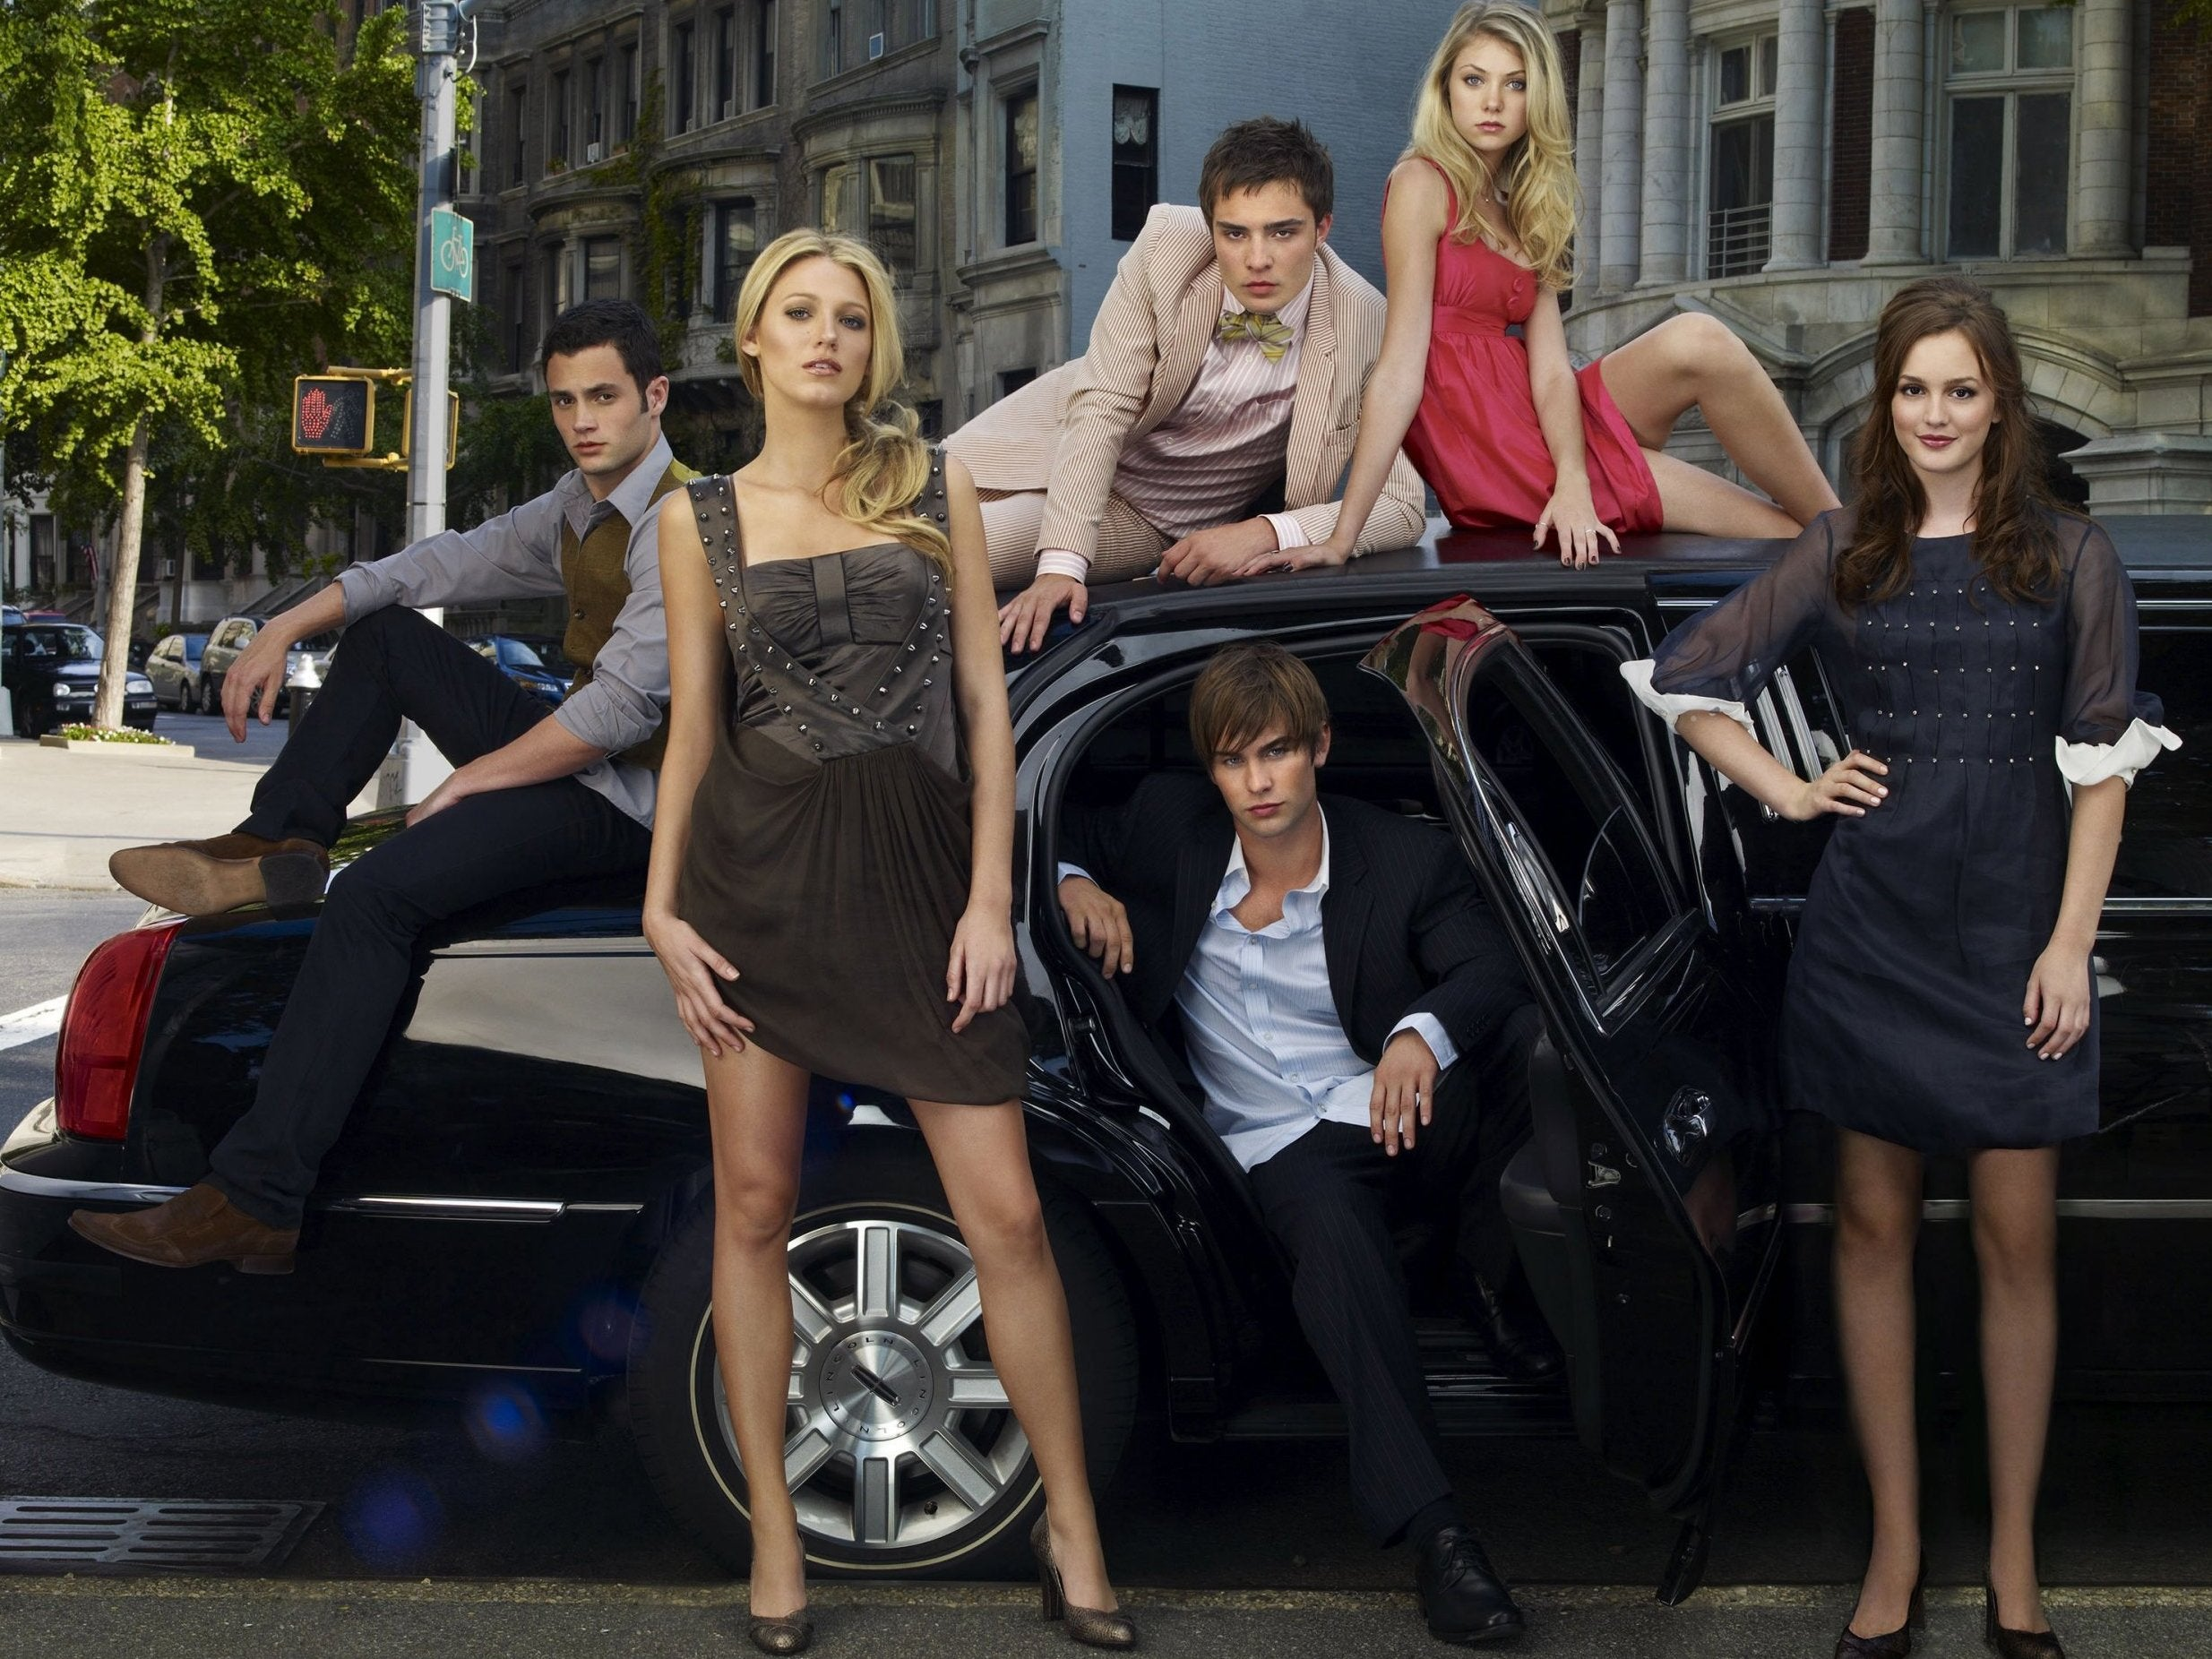 Can a Gossip Girl reboot work in the social media age?